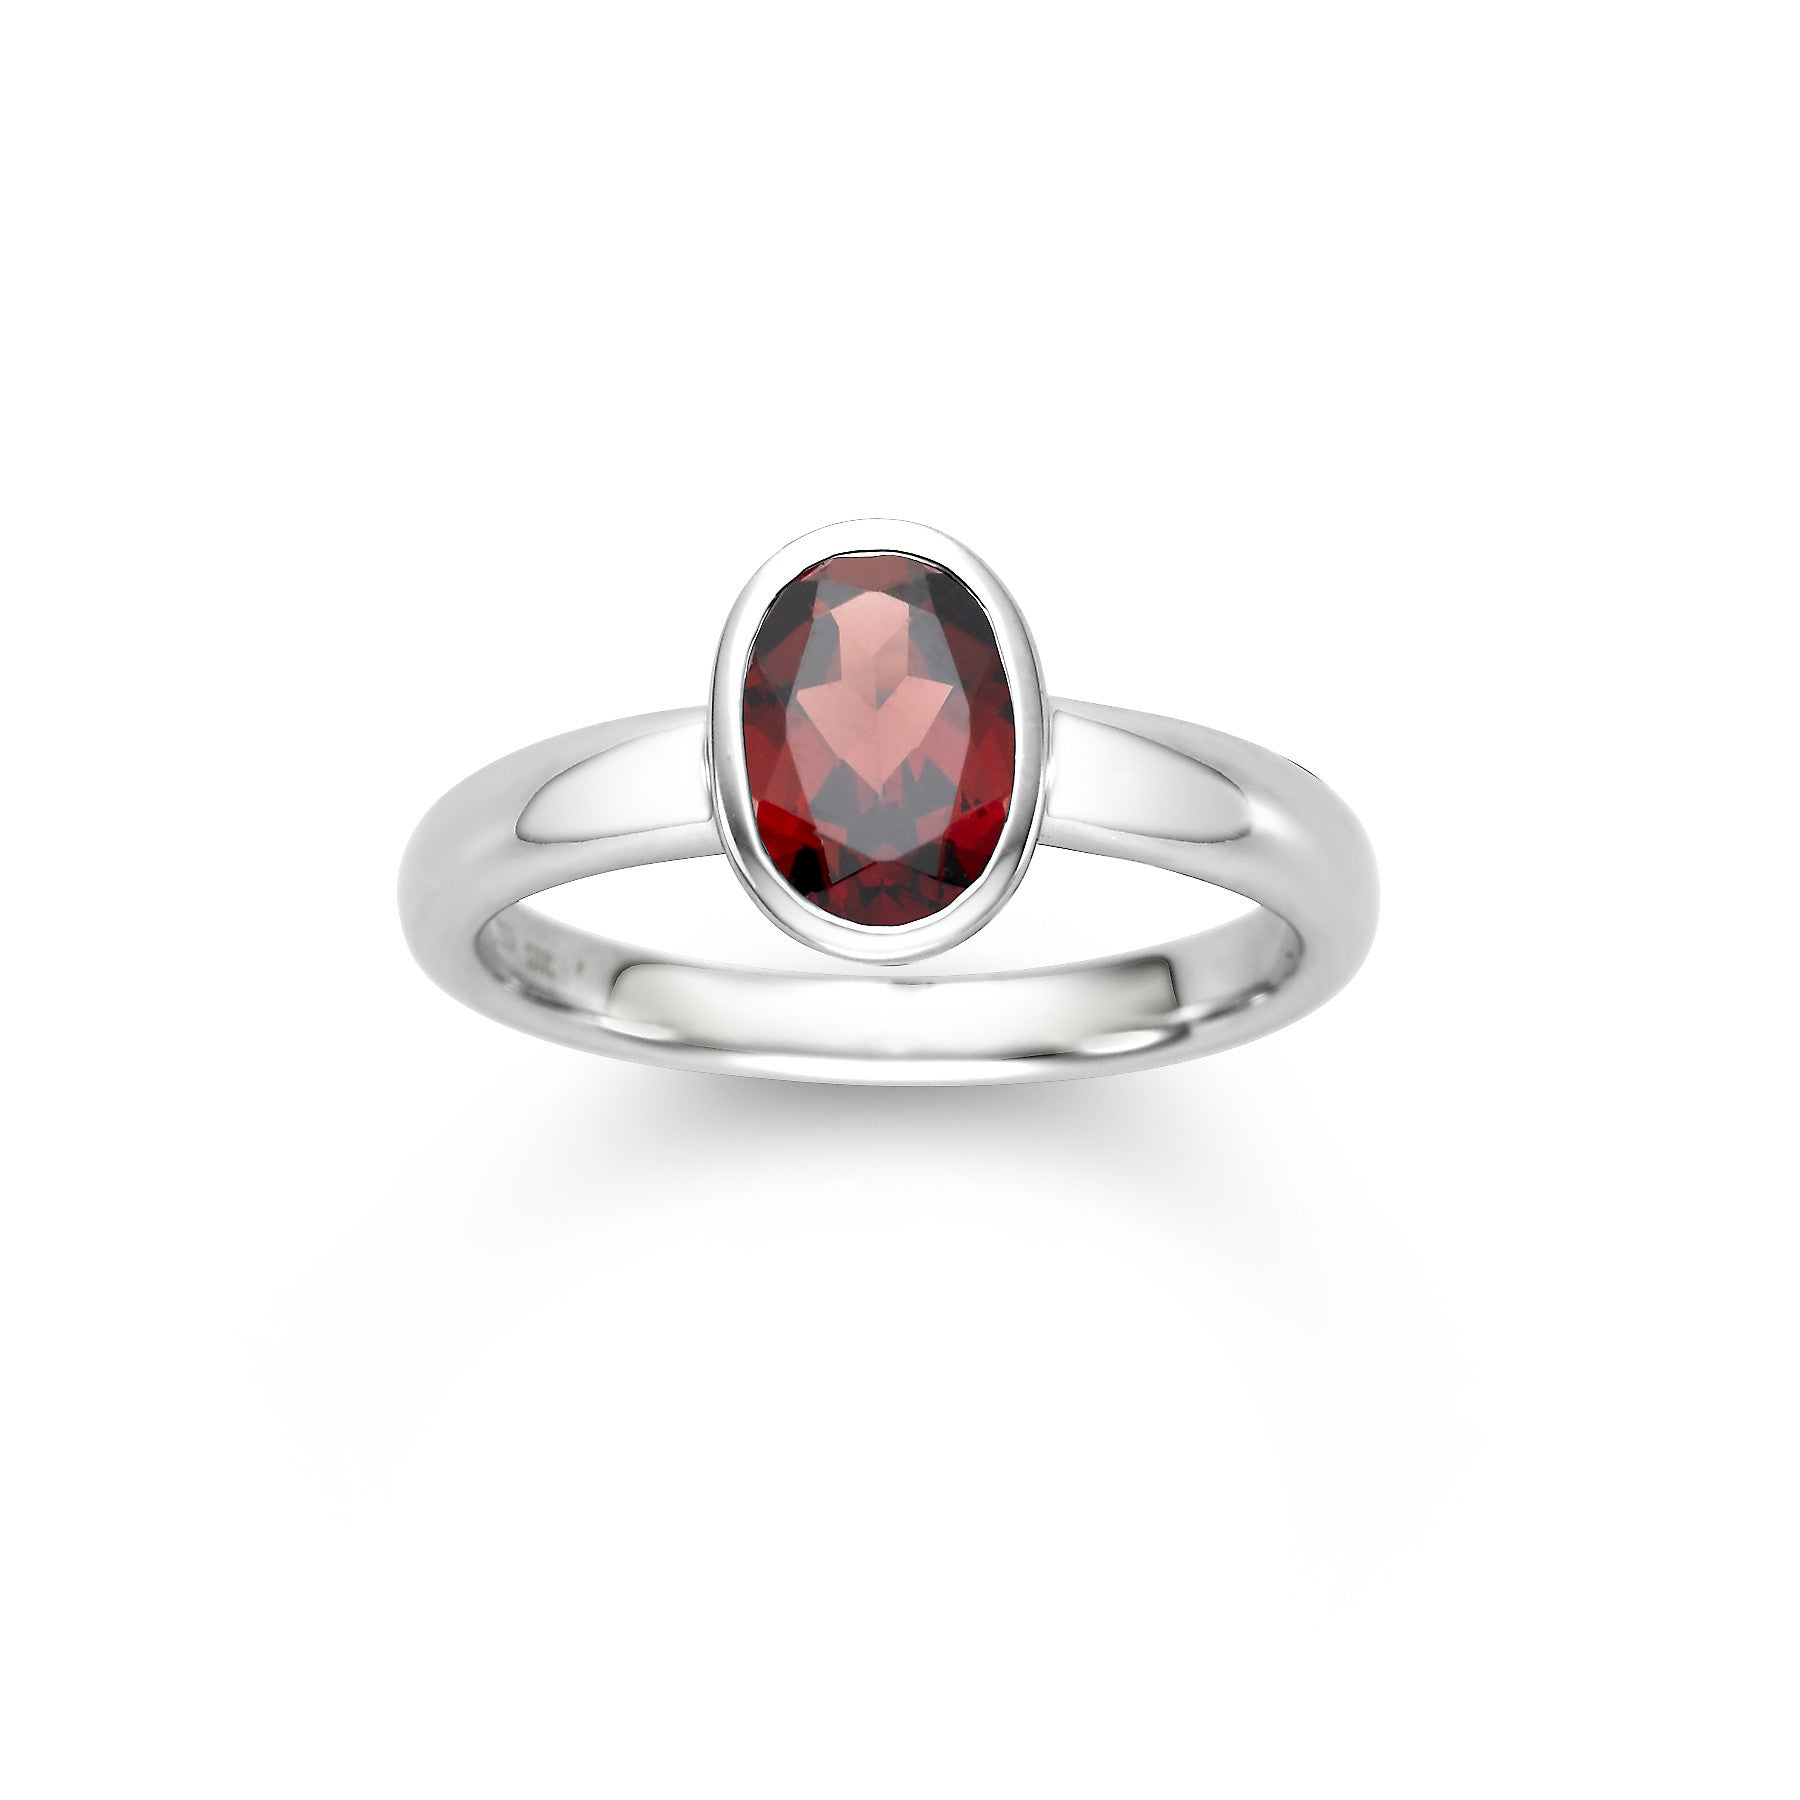 14K White Gold Bezel Set Garnet Ring - Isaac Westman - 1